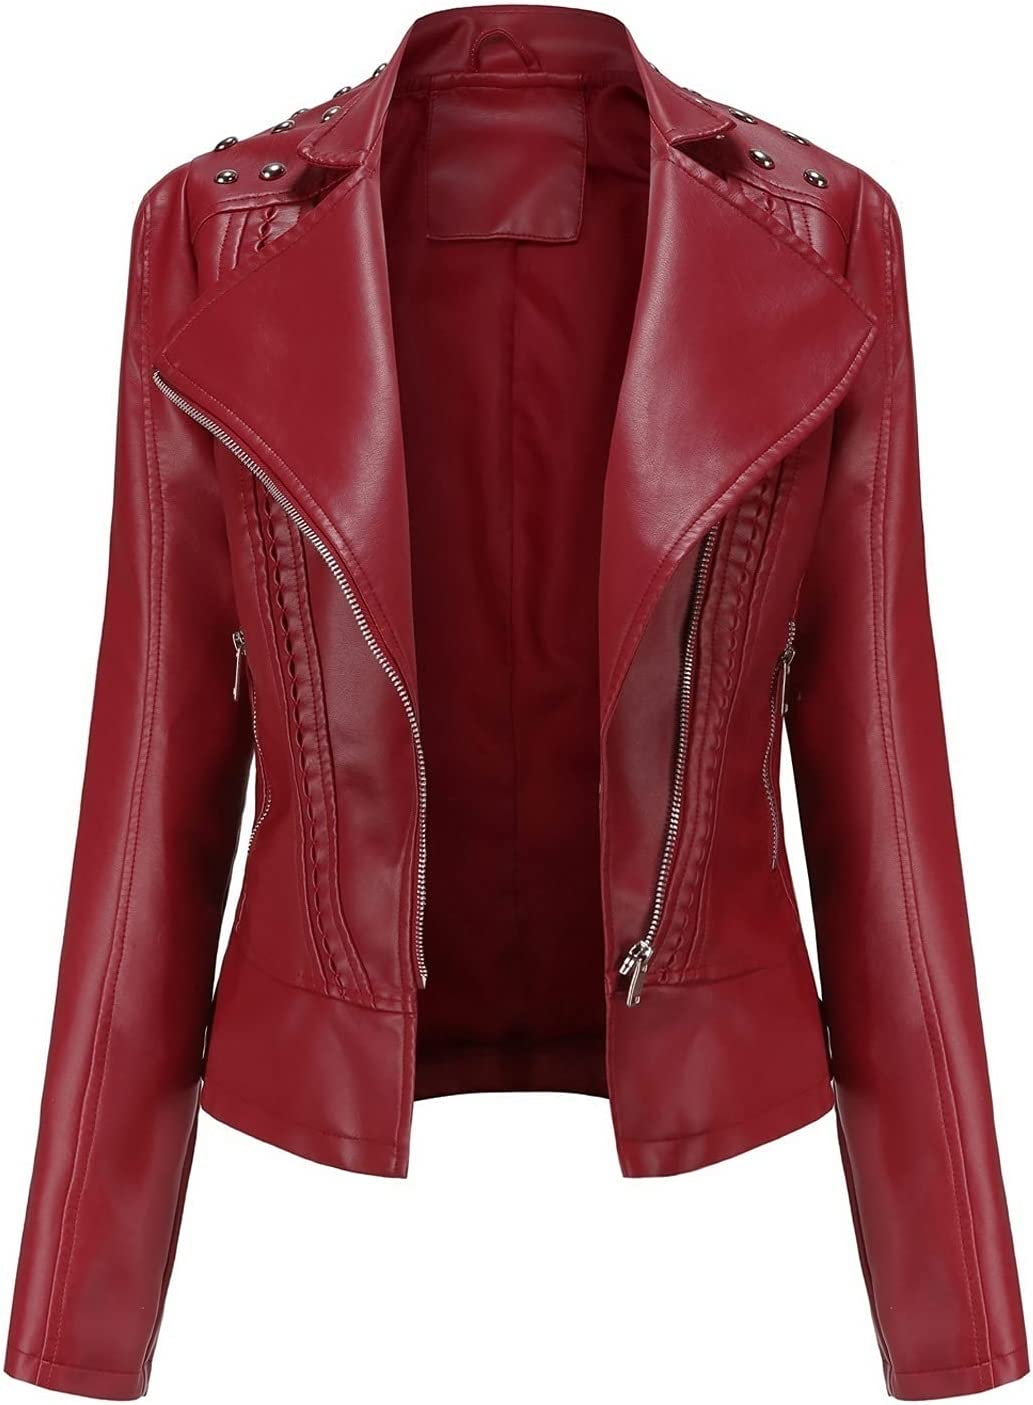 CRMY Women's At the price of surprise Jacket Motorcycle Imitation Leath Coat Faux Leather OFFicial shop